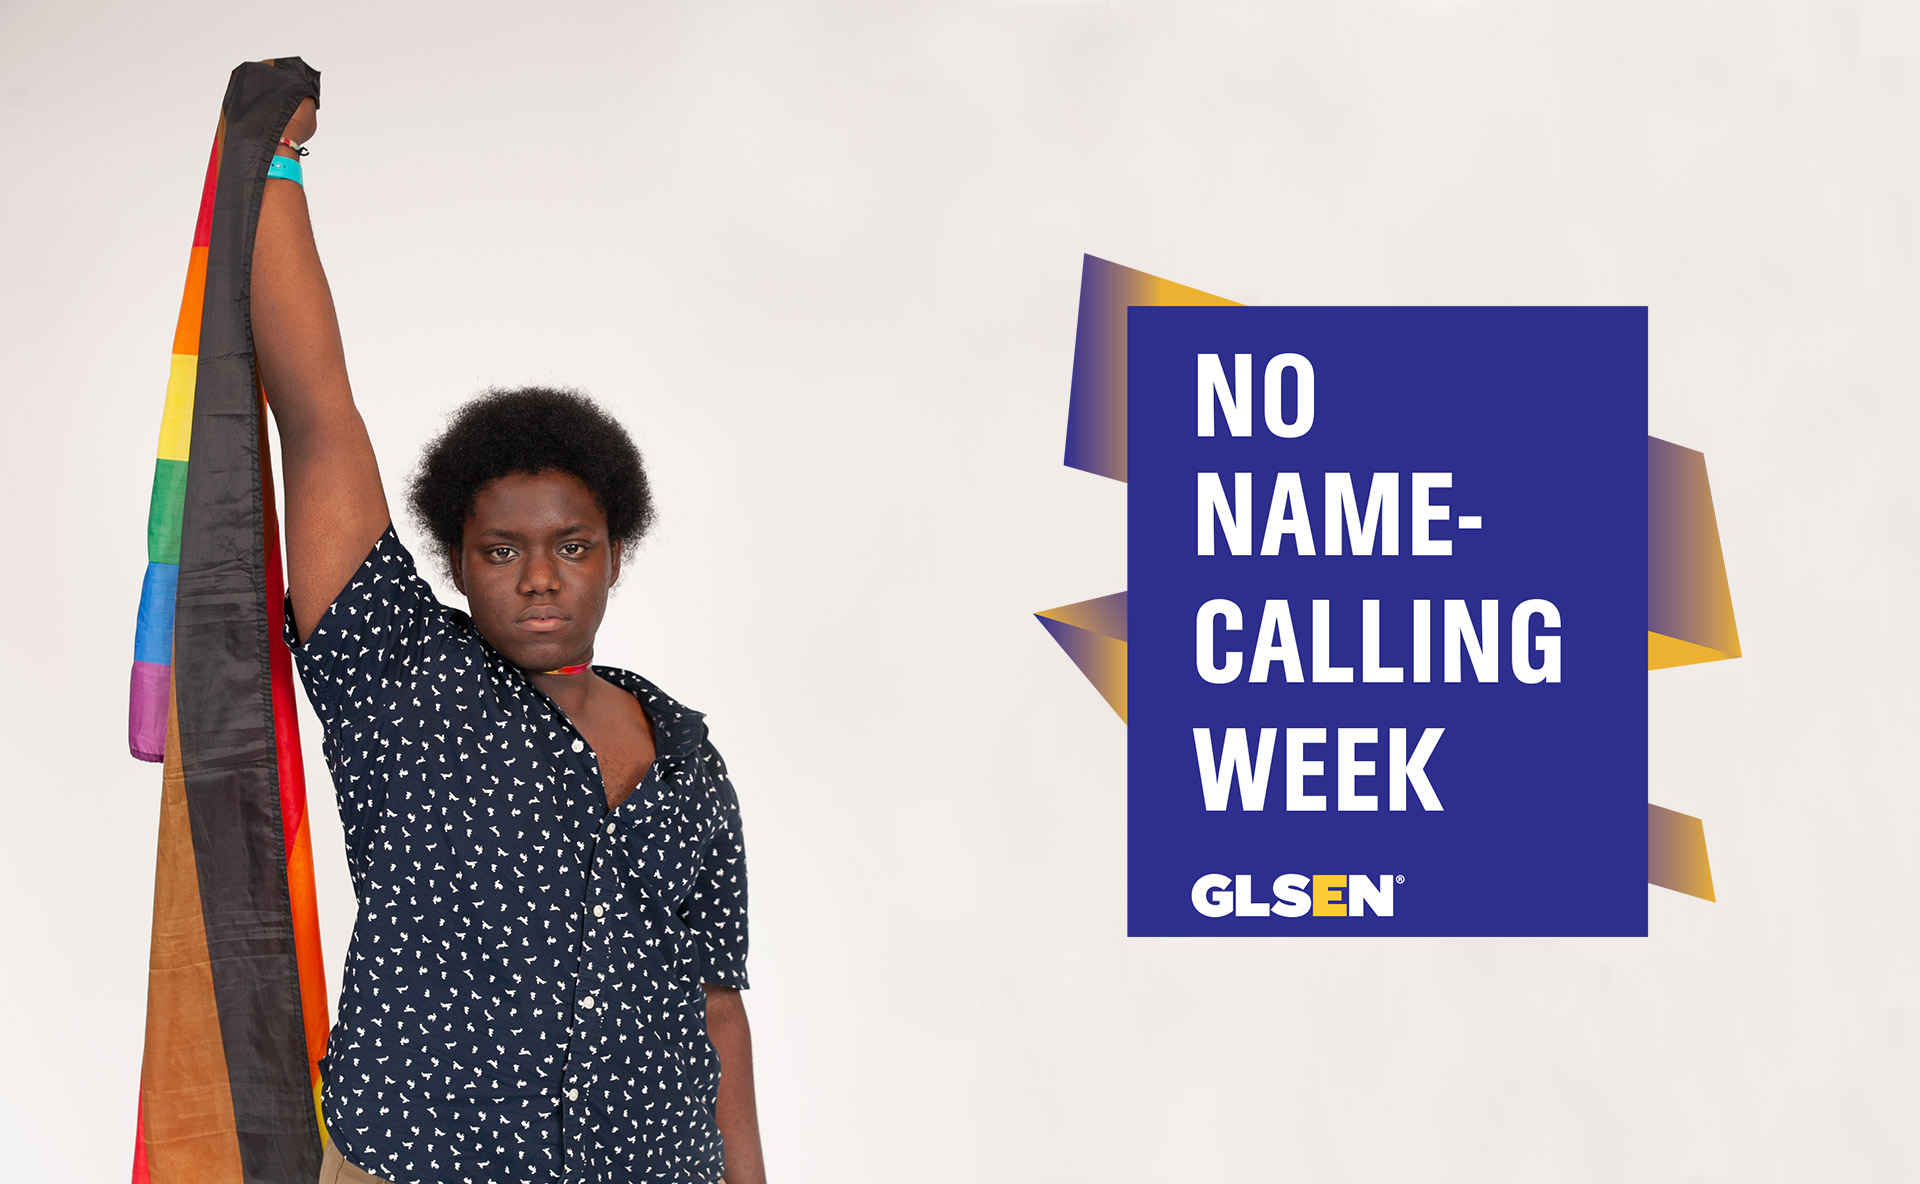 No Name-Calling Week banner with logo and student holding LGBTQ flag